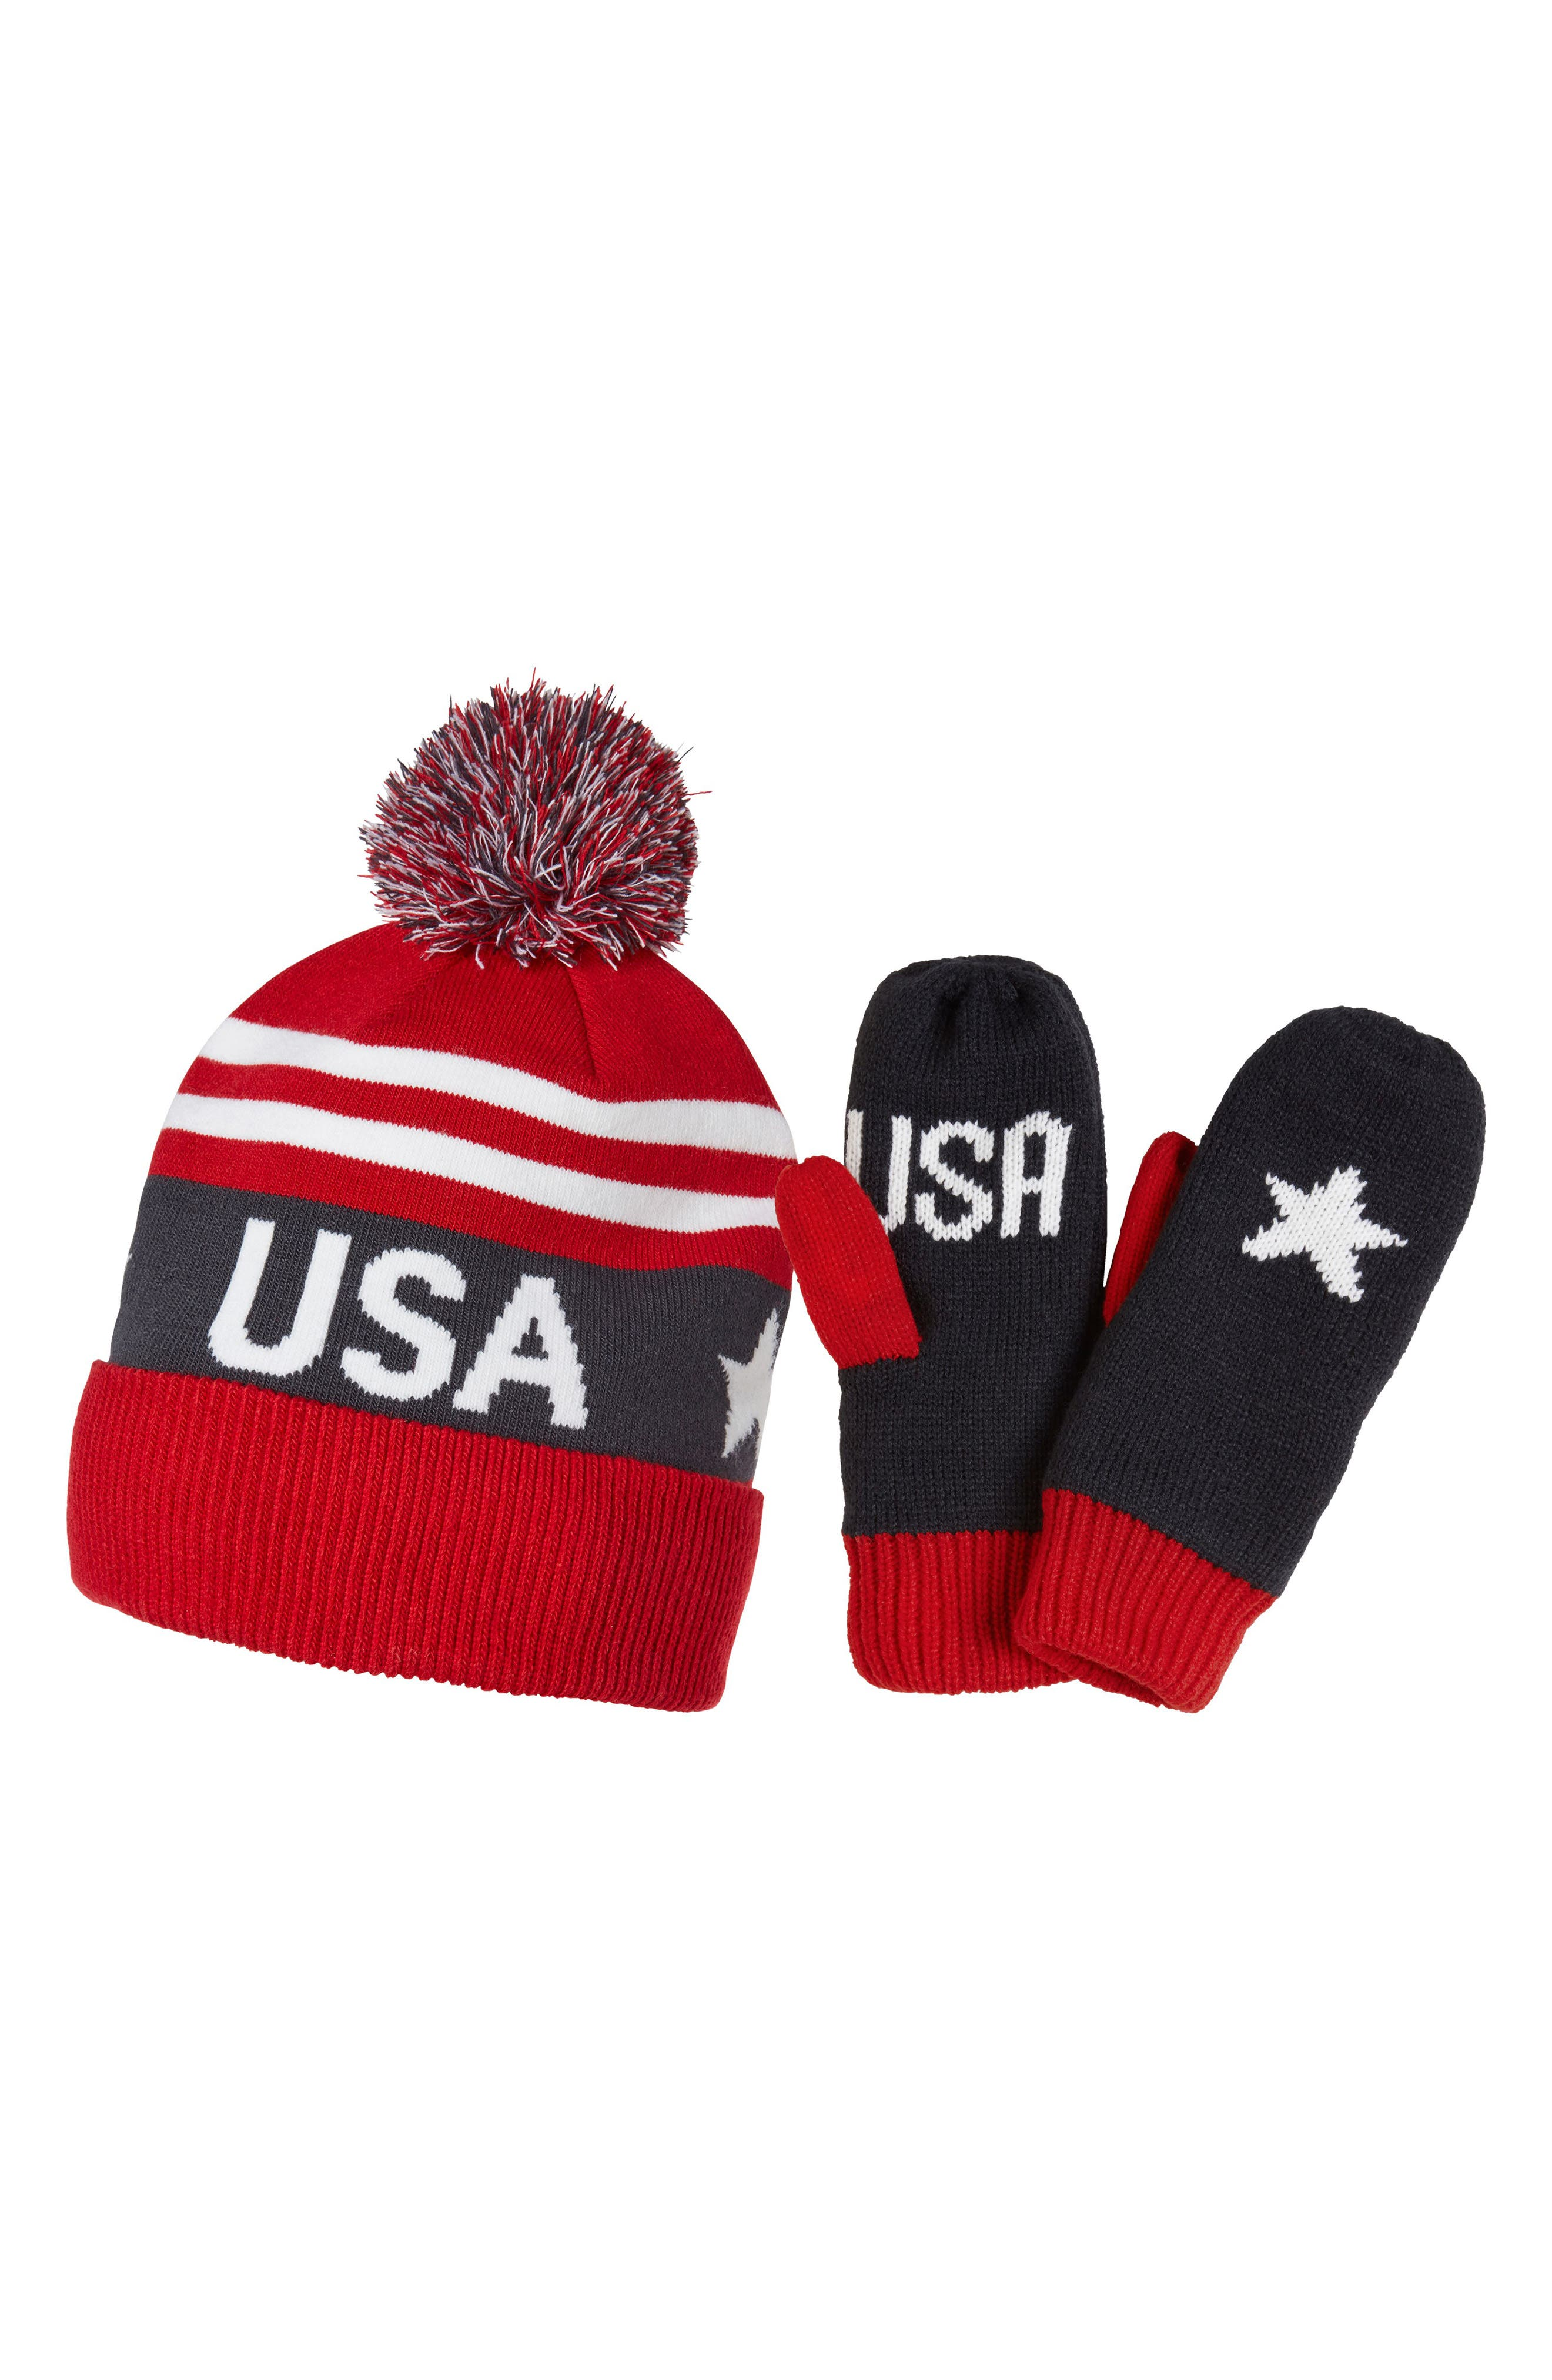 Going For Gold Knit Cap & Mittens Gift Set,                             Main thumbnail 1, color,                             405